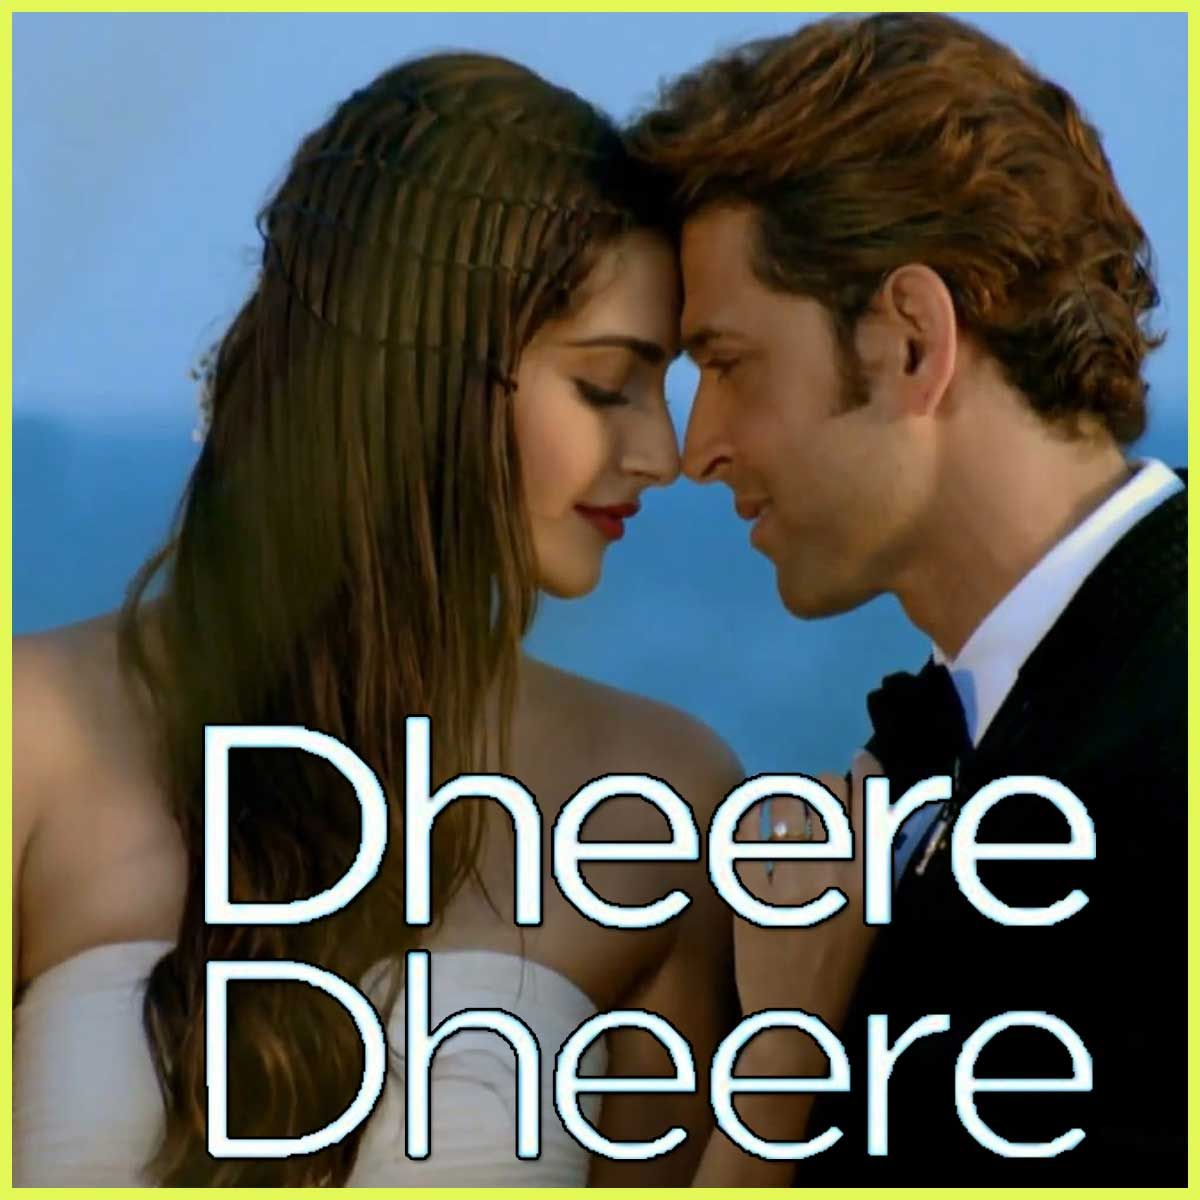 Dheere Dheere Dheere Dheere Mp3 And Video Karaoke Format In 2020 Mp3 Song Download Mp3 Song Audio Songs